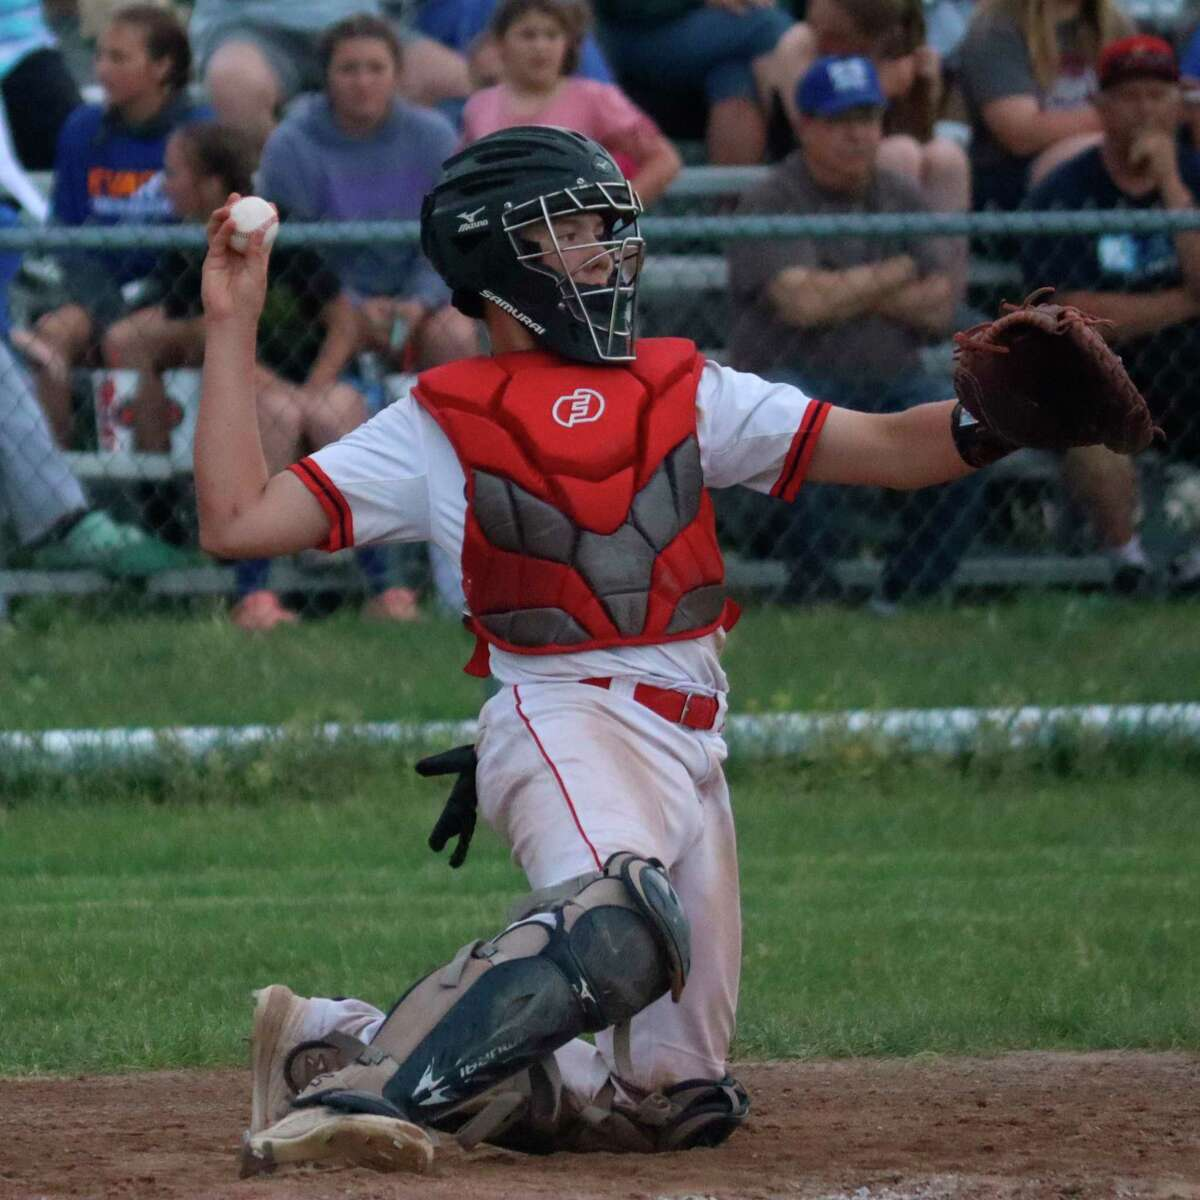 Danny Wallington made first team all-conference this year as a freshman. (Record Patriot file photo)